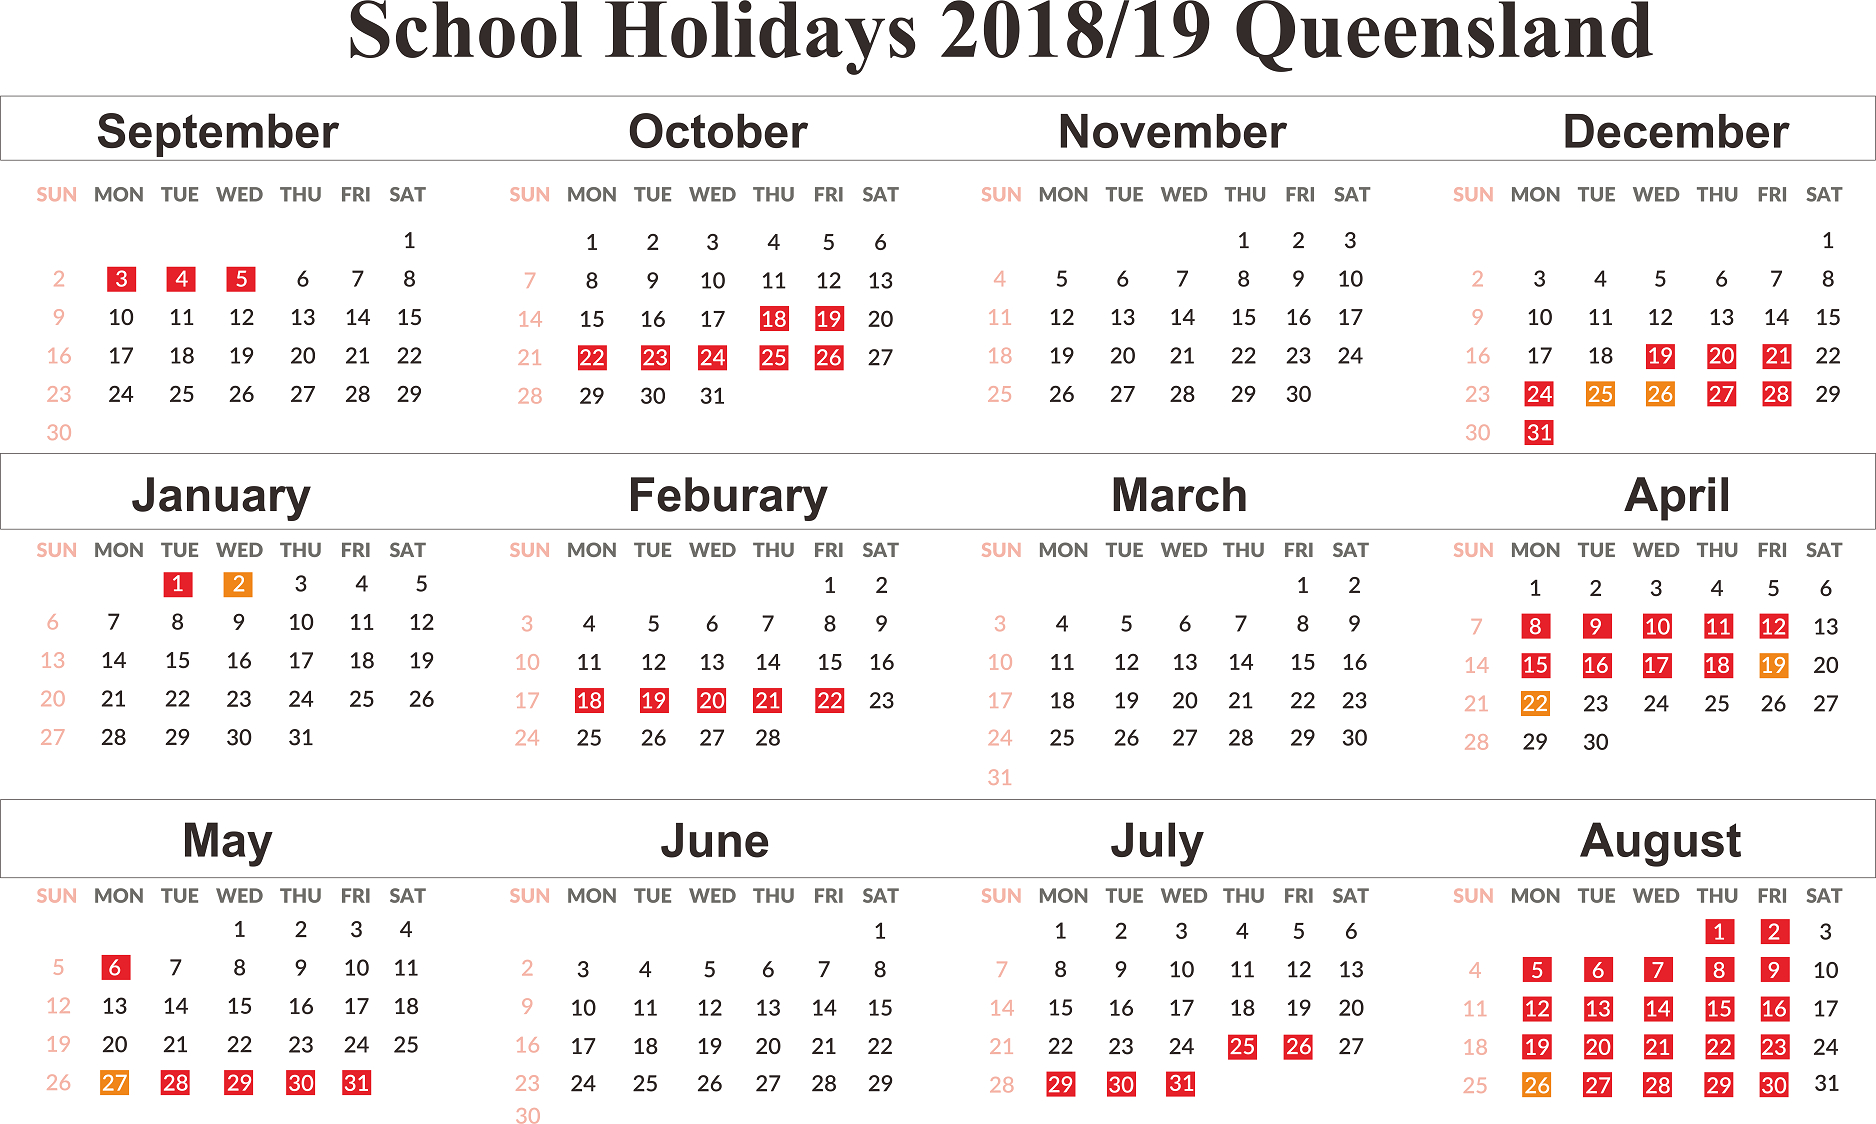 Free Qld (Queensland) School Holidays Calendar 2018-2019 | Free 2019 Calendar Qld Holidays